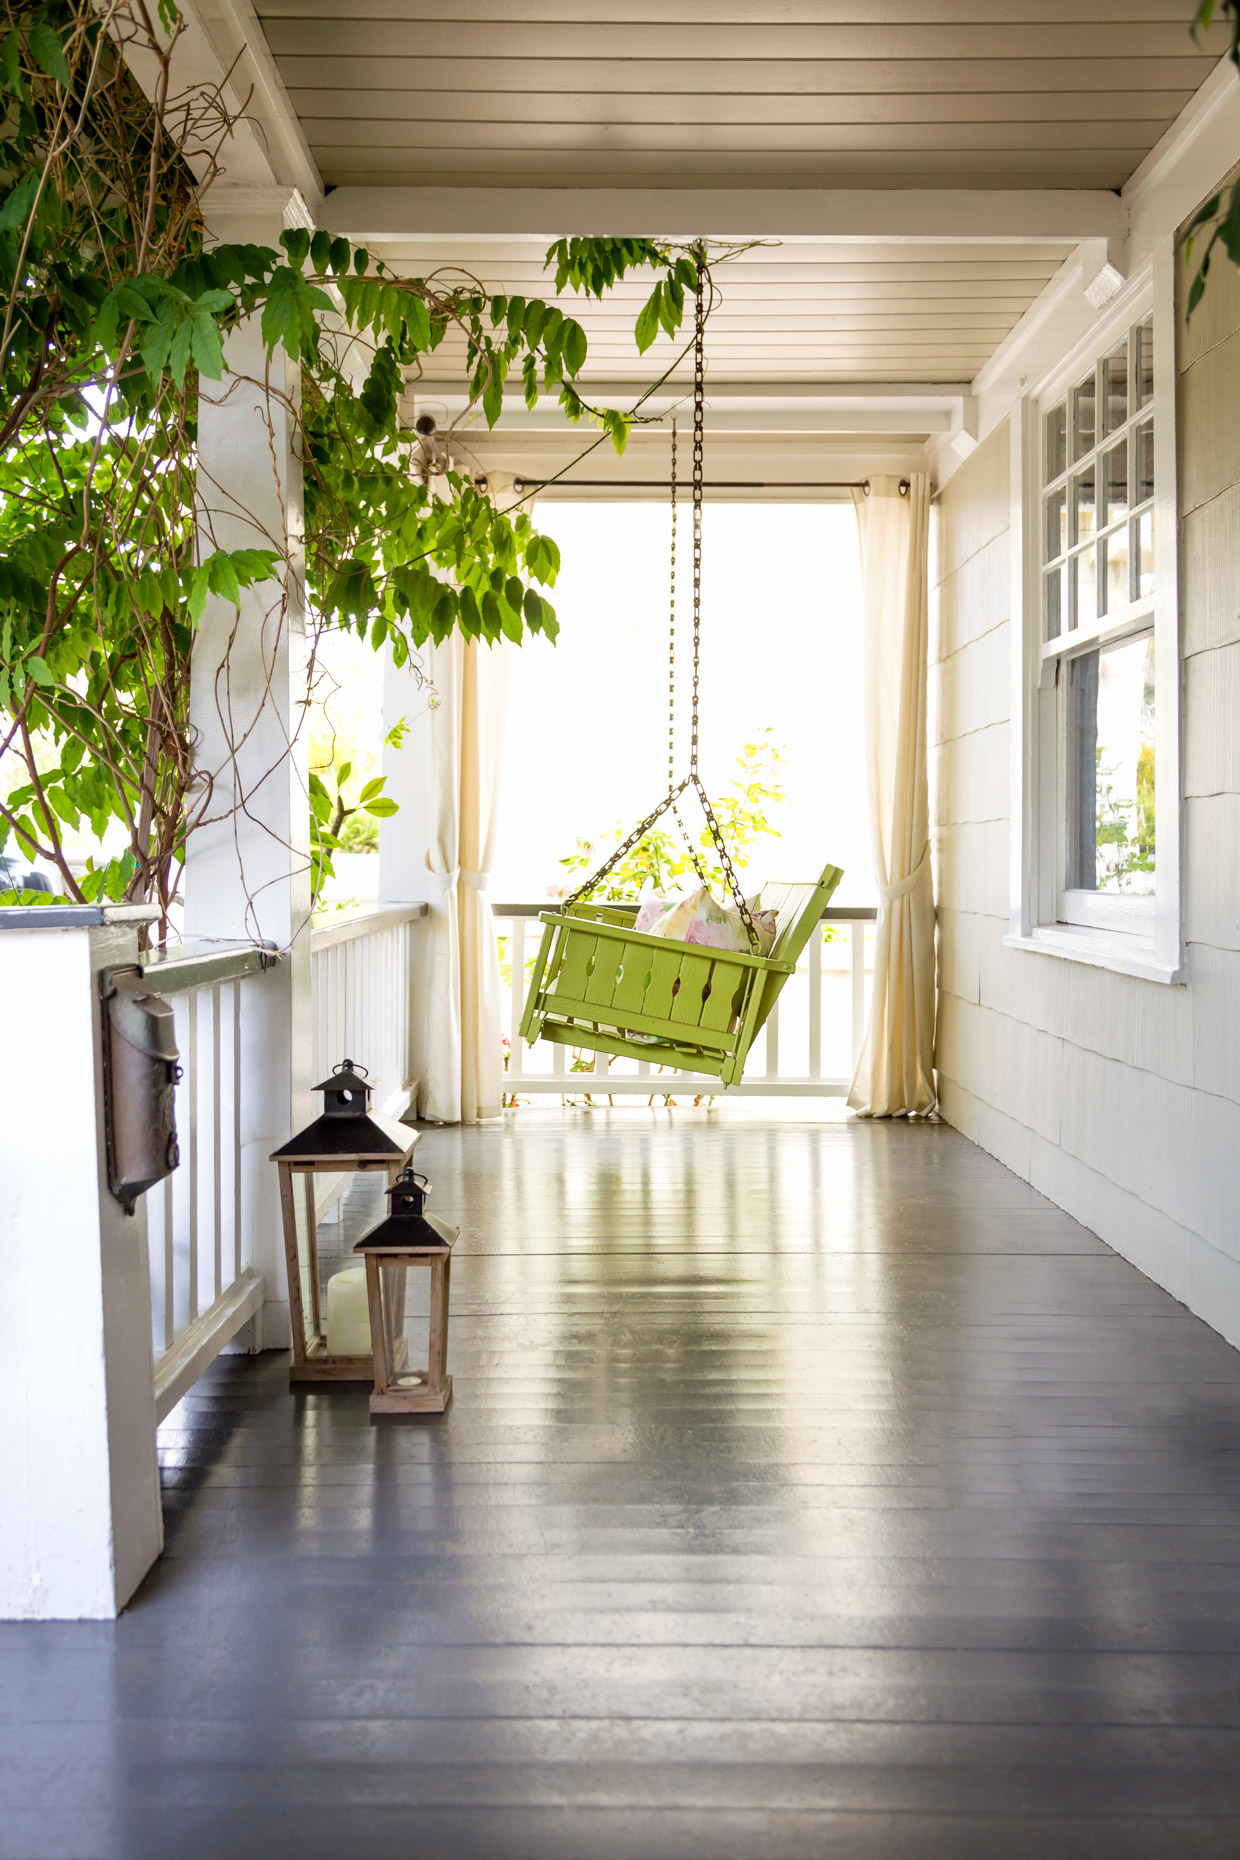 SiriBerting, SiriBertingPhotography,  Interiors, Exteriors, Front Porches, Swings